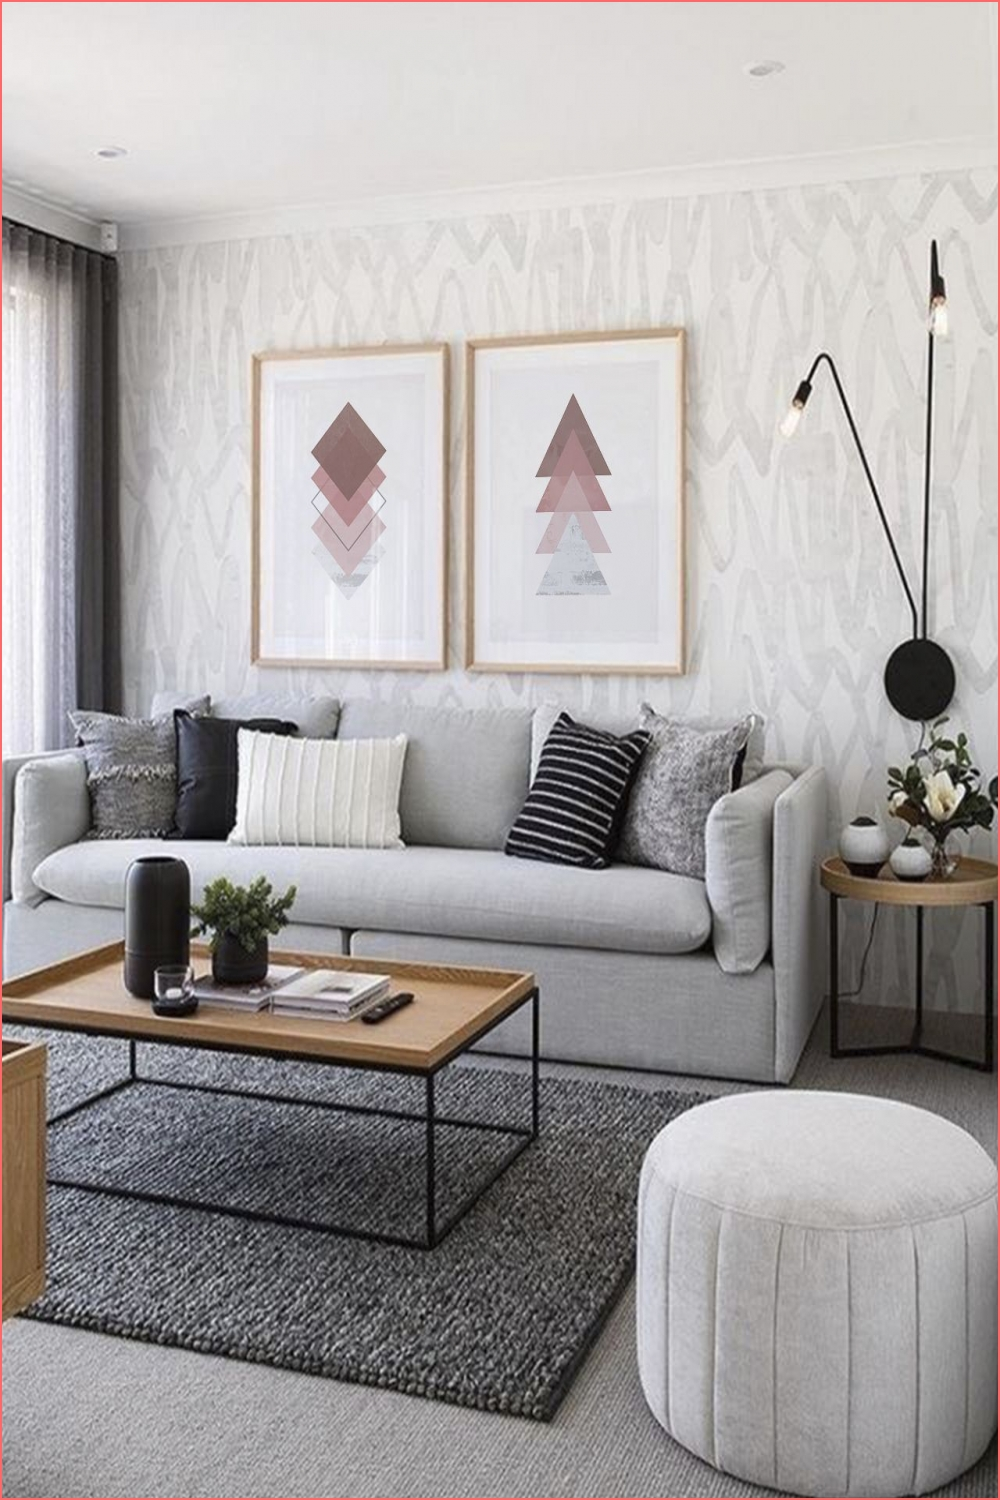 Pin on Ideas for Living Room on living room interior design on living room interior design post on 2020-11-24 17:11:02